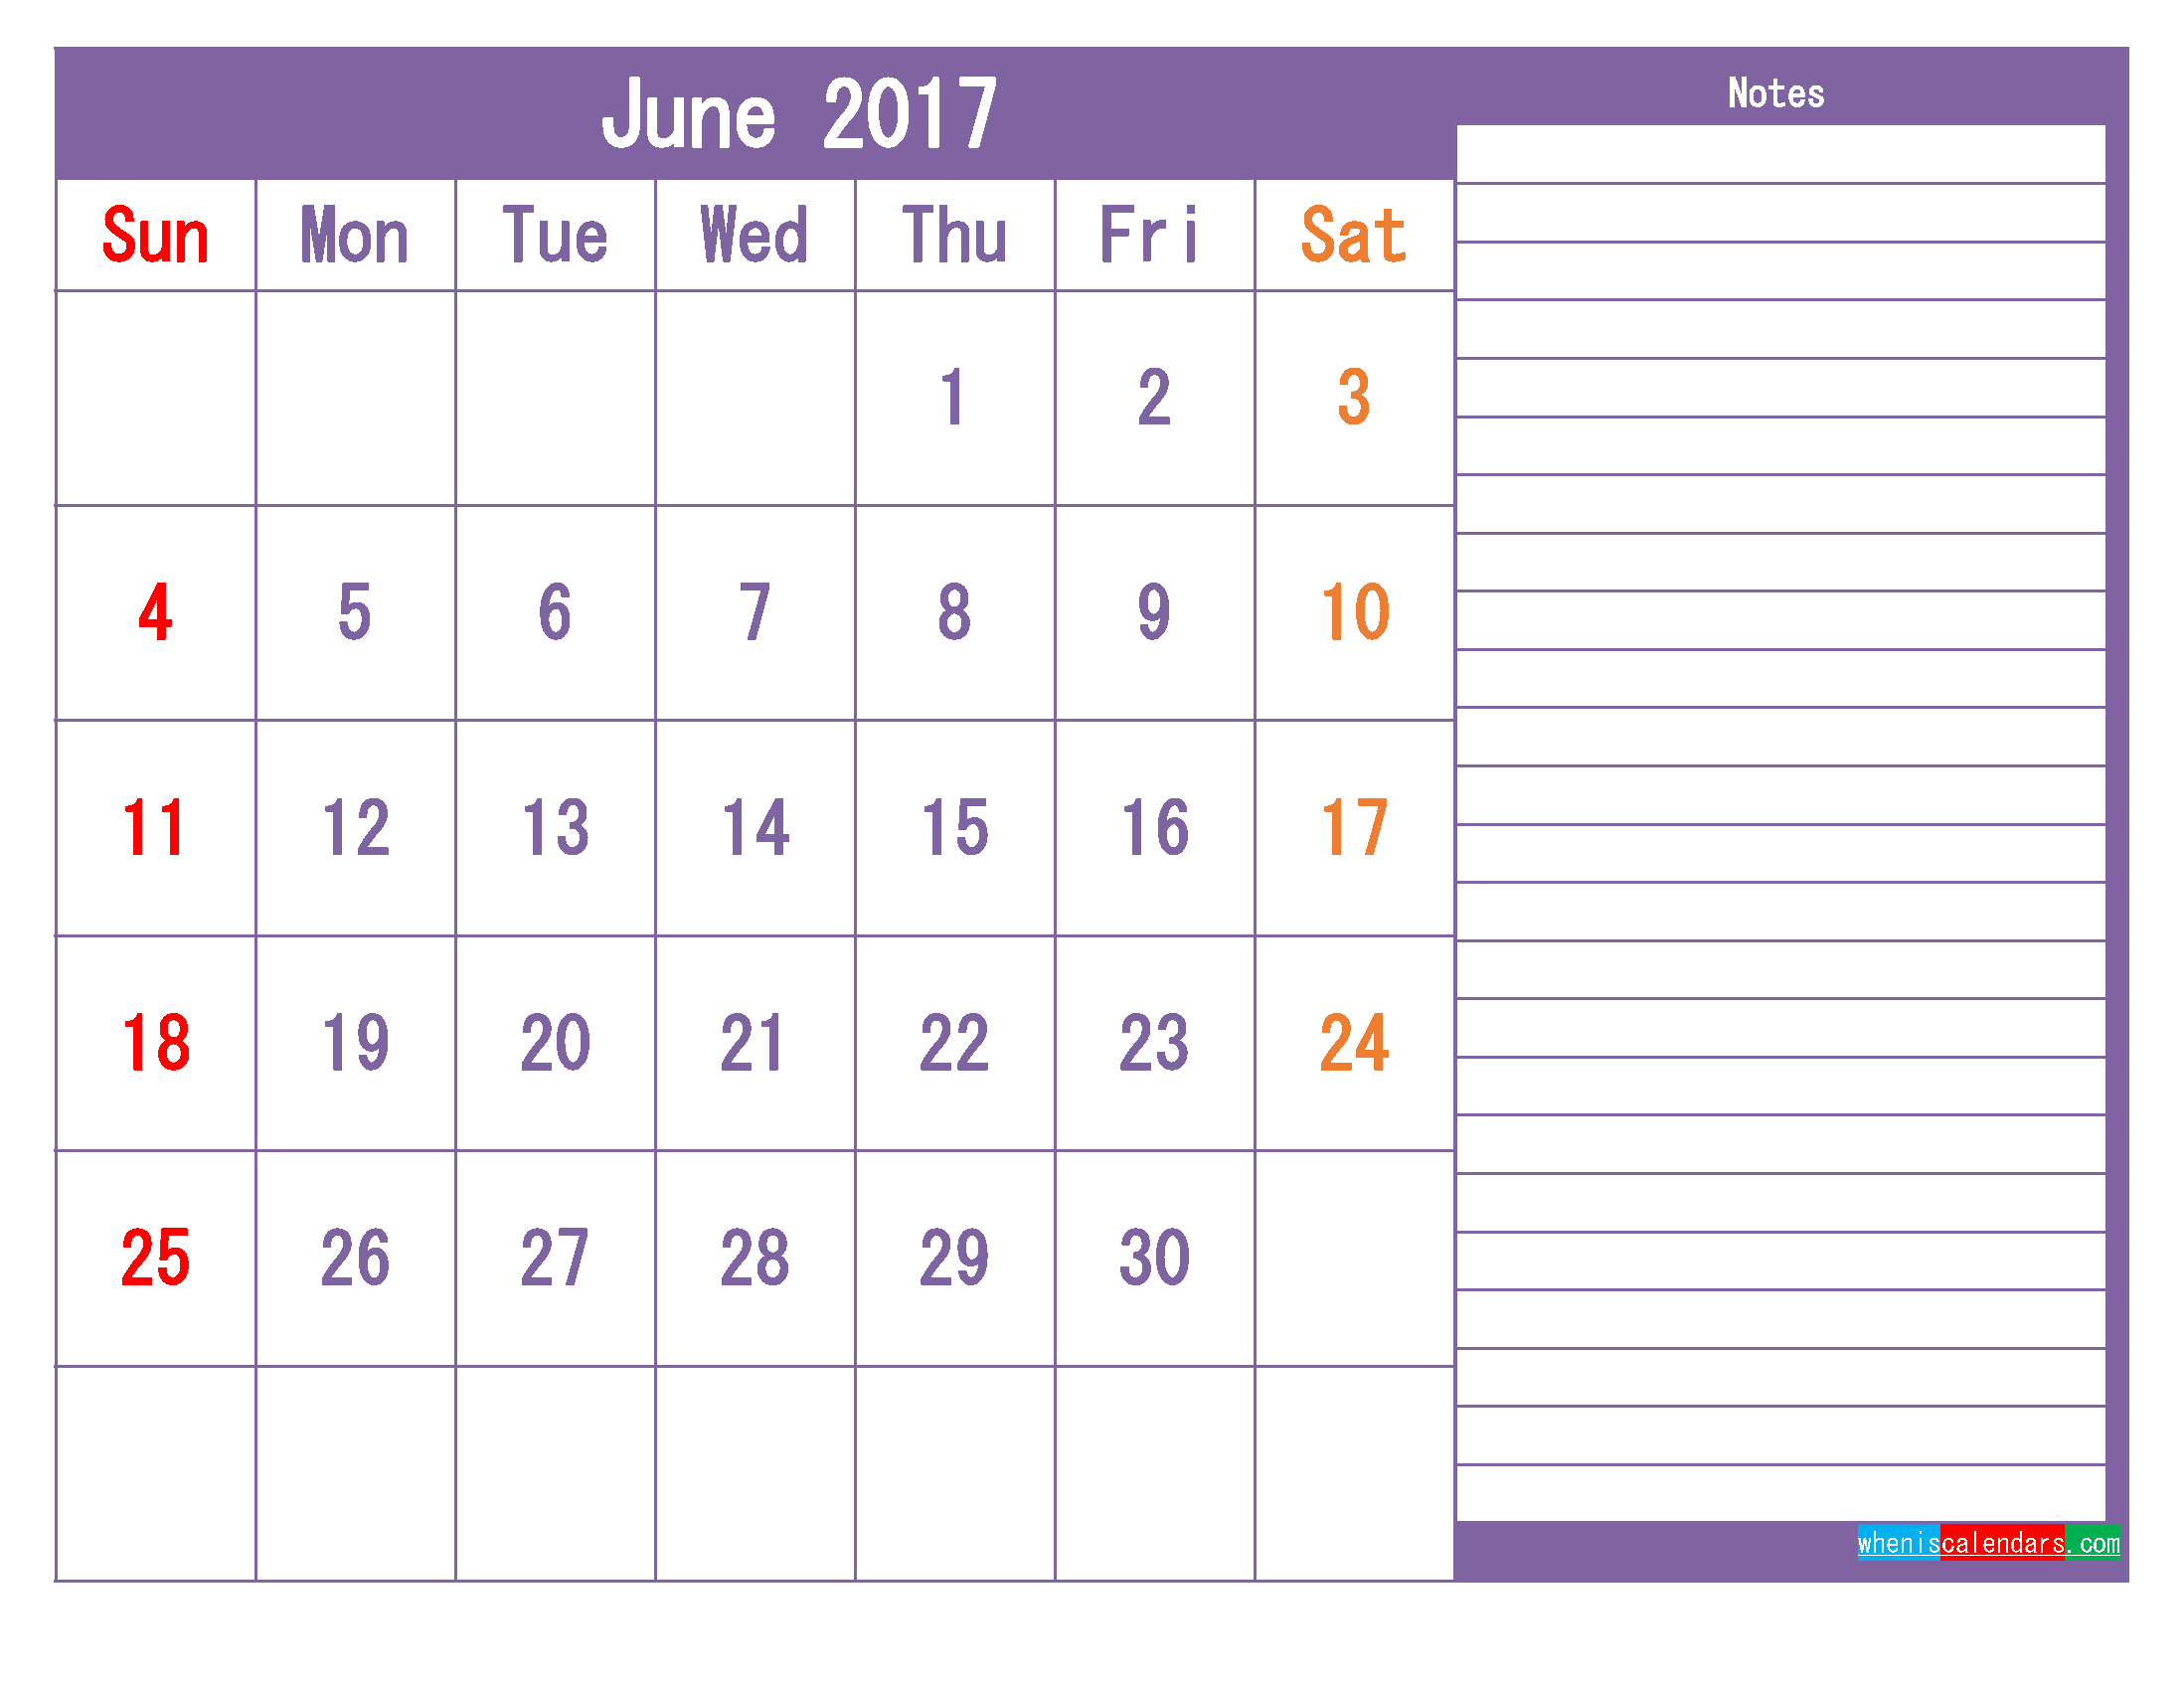 June 2017 Printable Calendar Template as PDF and PNG